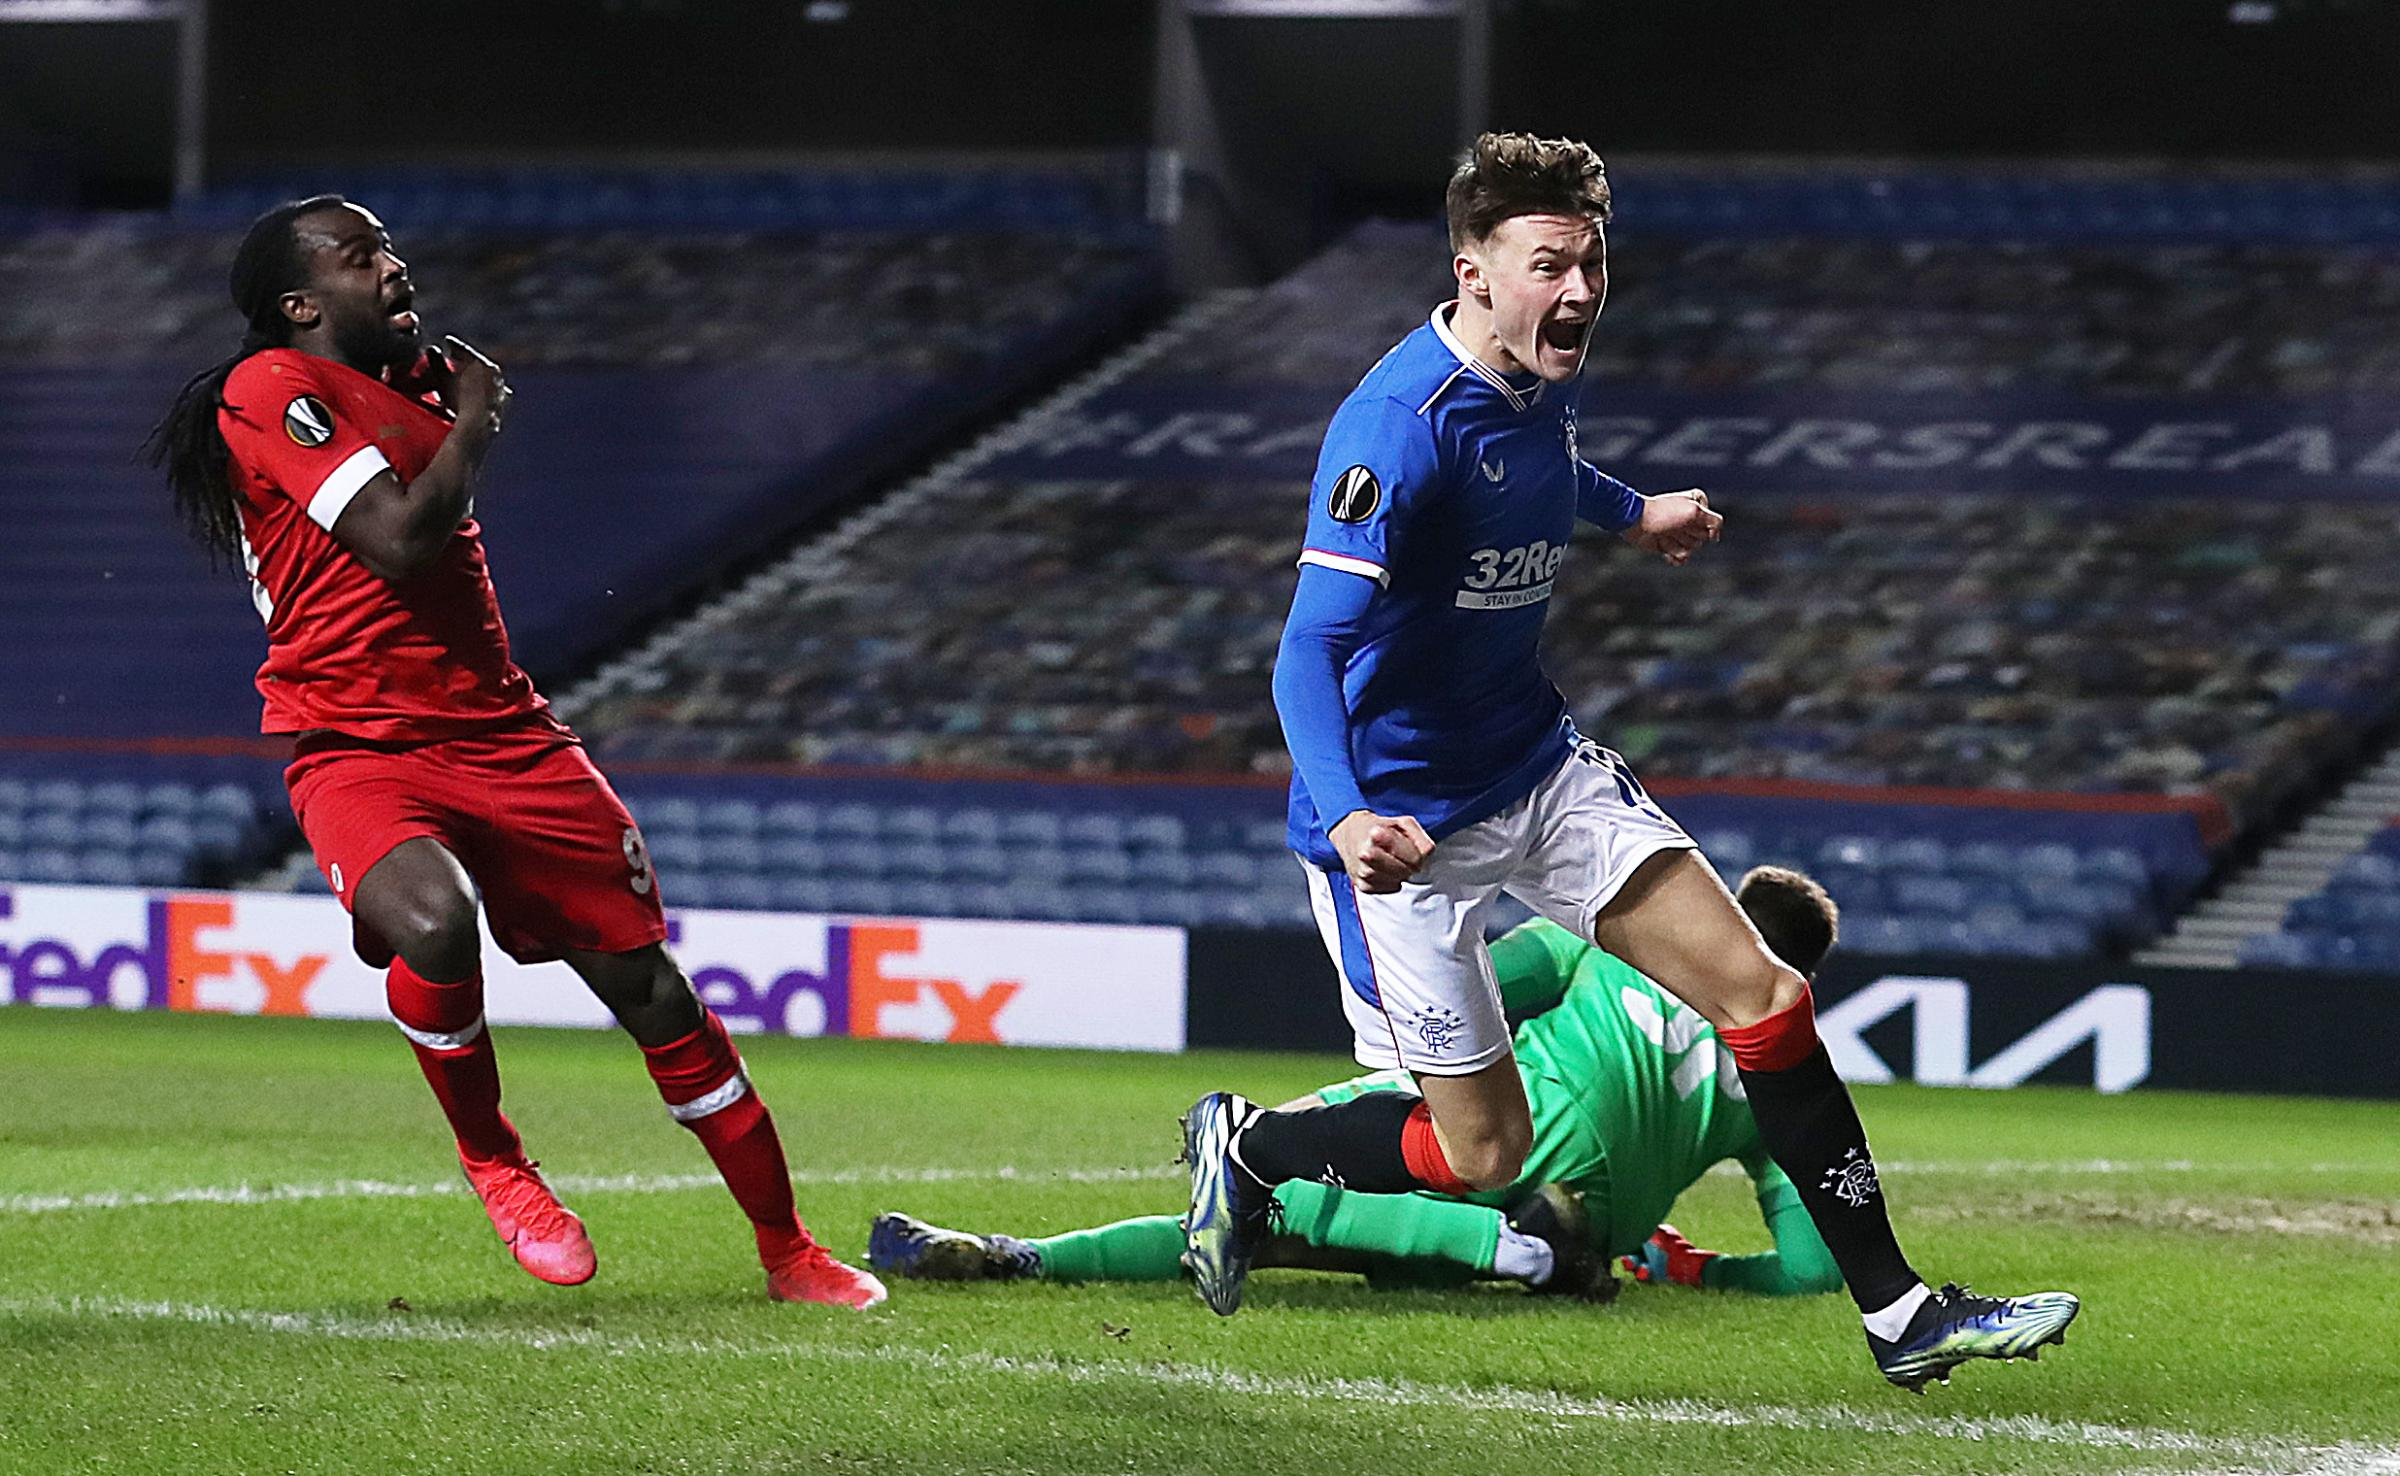 Rangers 5-2 Royal Antwerp: Nathan Patterson takes first step on road to redemption in frantic win